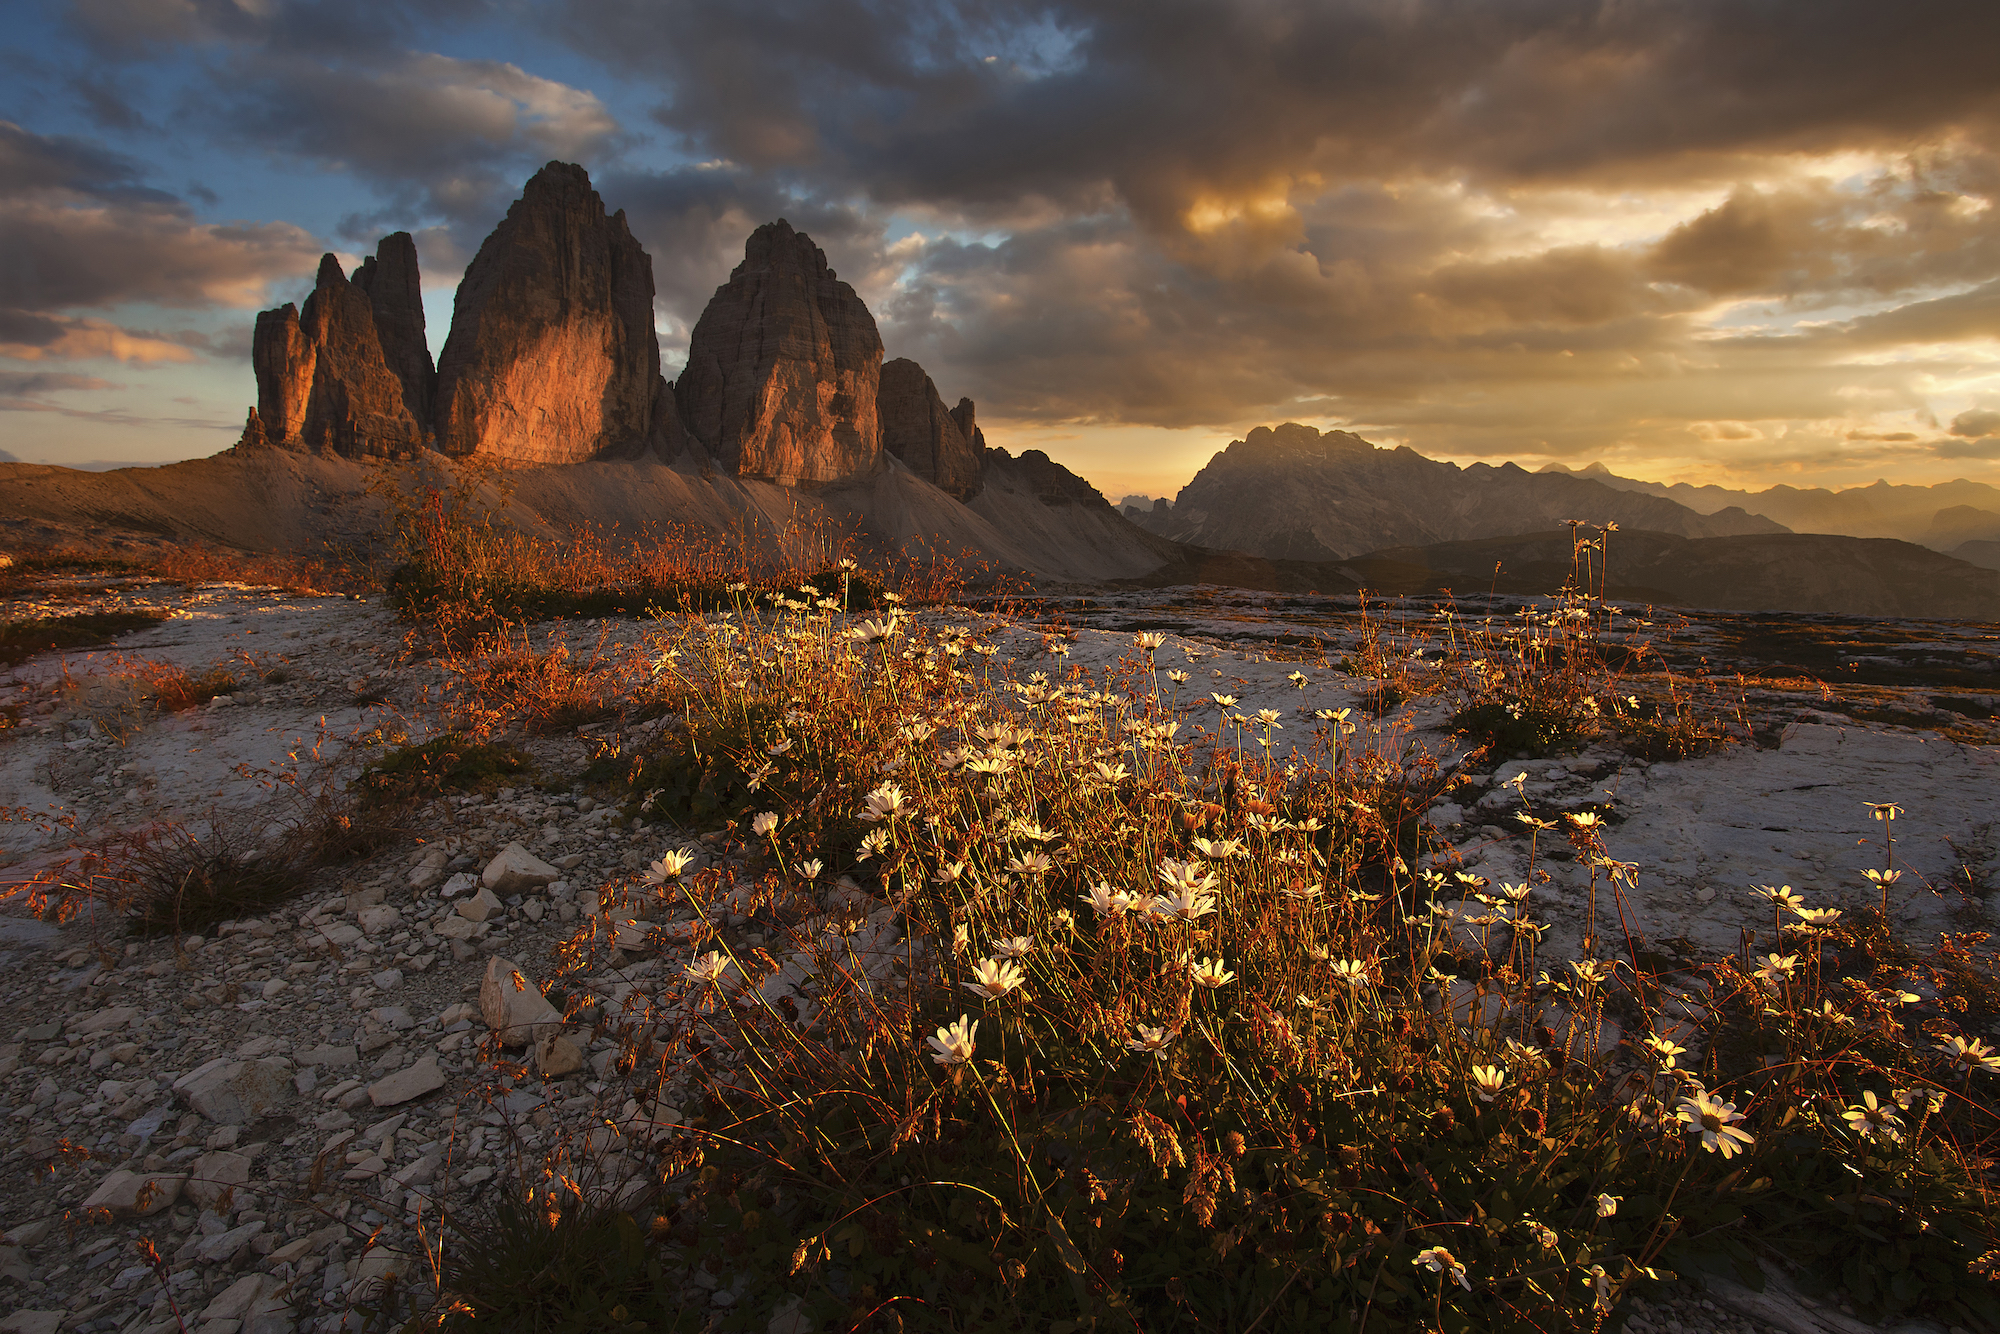 Sunset at the Three Monoliths, Dolomites, Italy, with a floral foreground interest